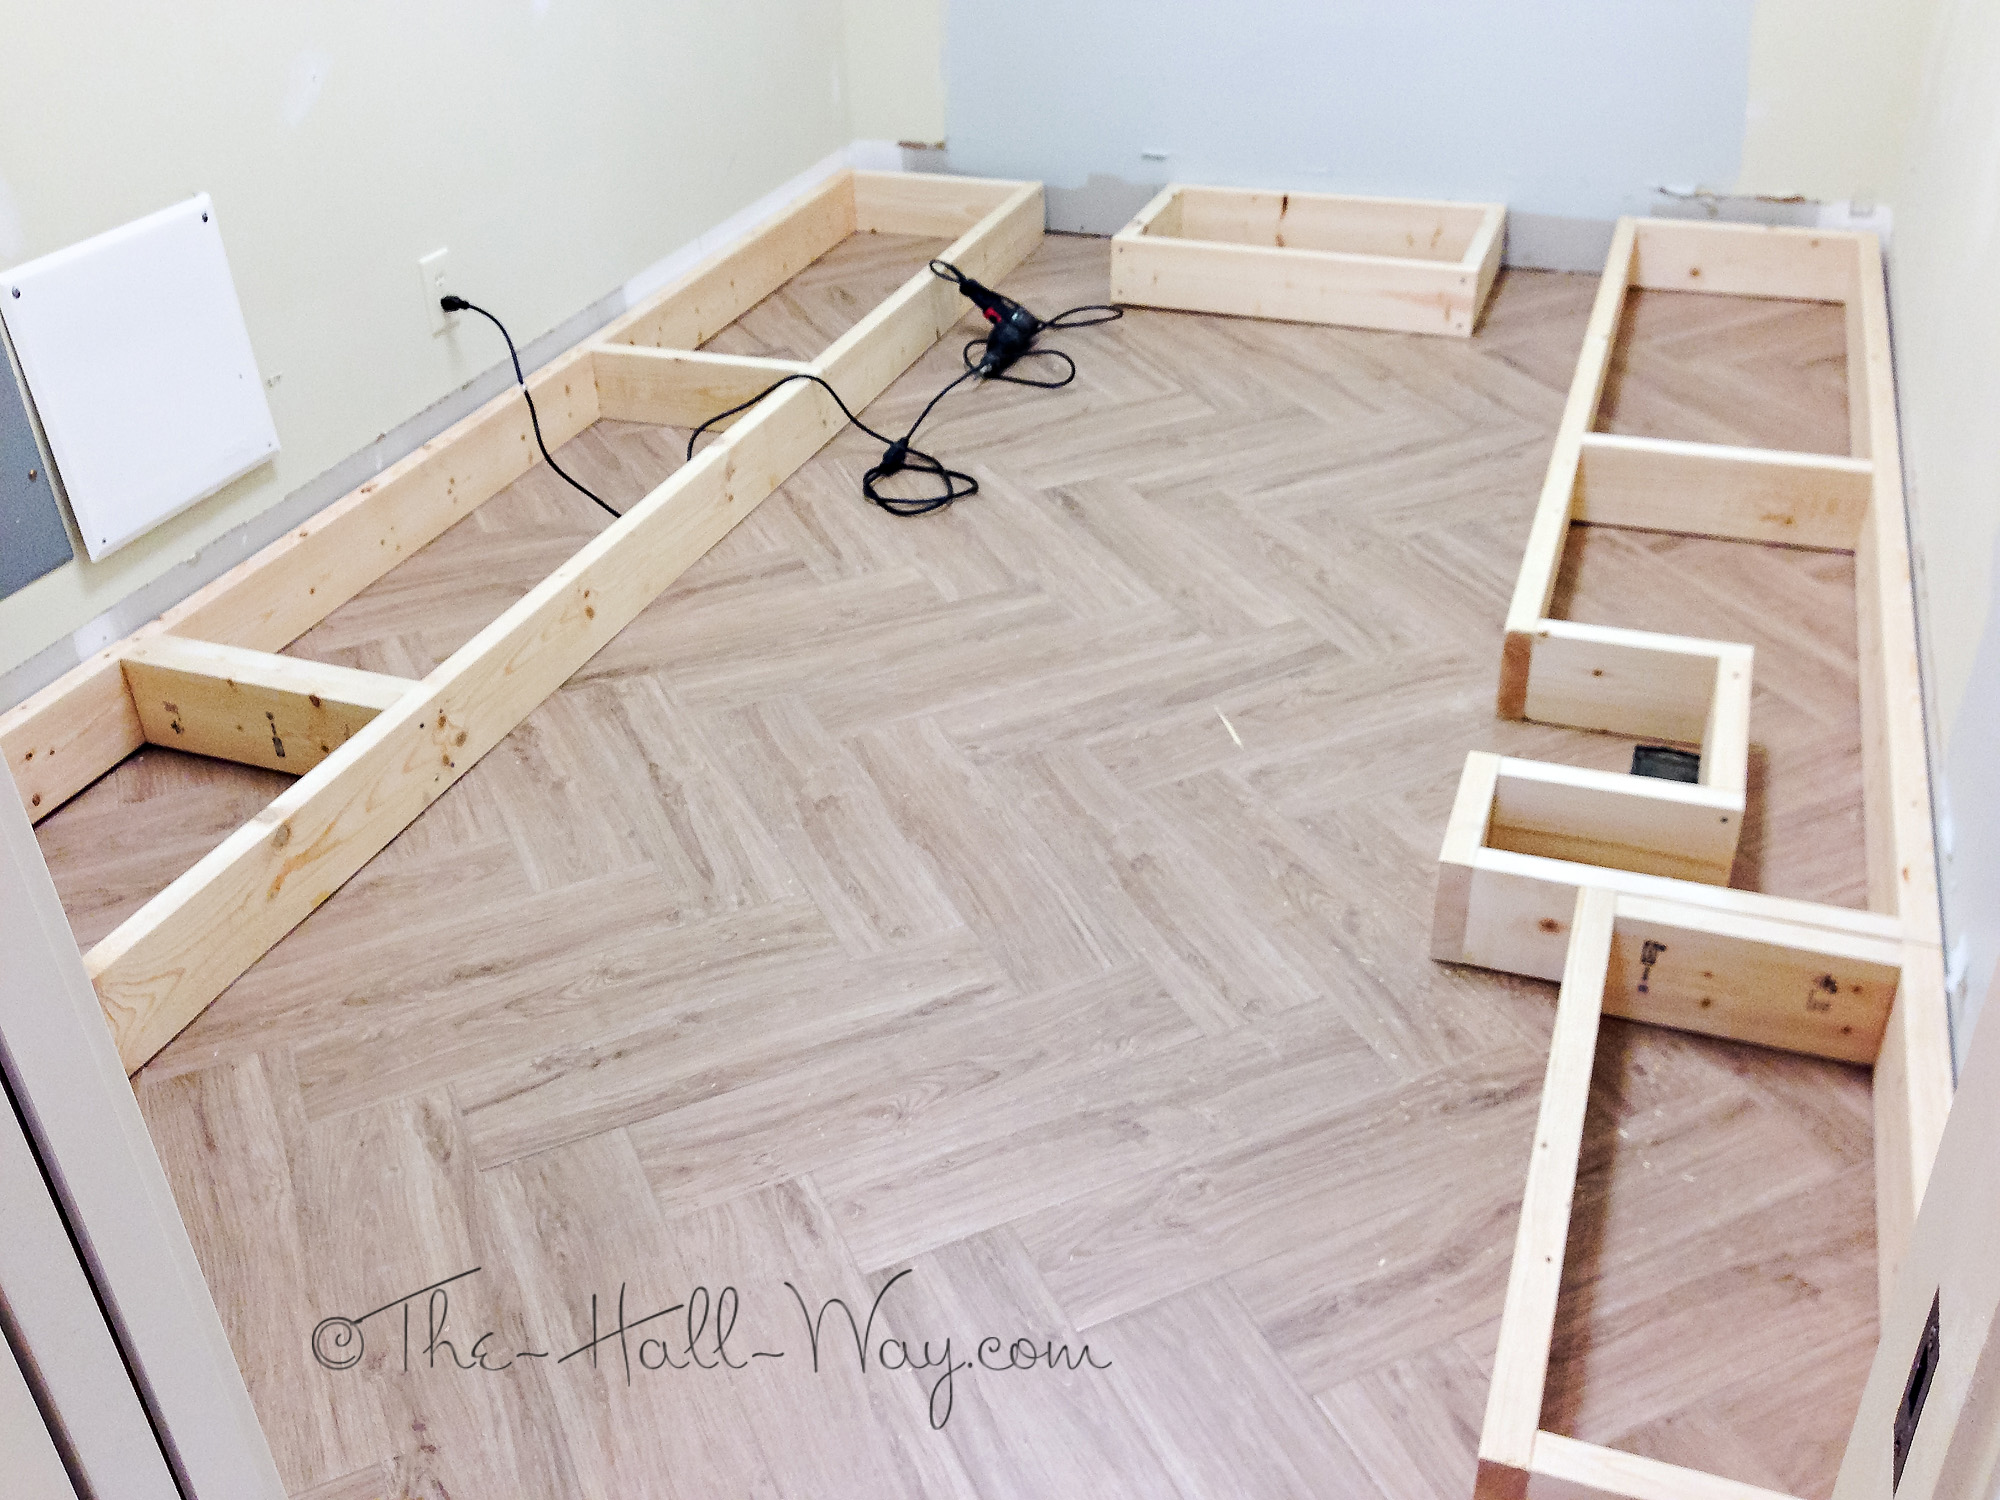 Kitchen Cabinets Over Baseboard Heater